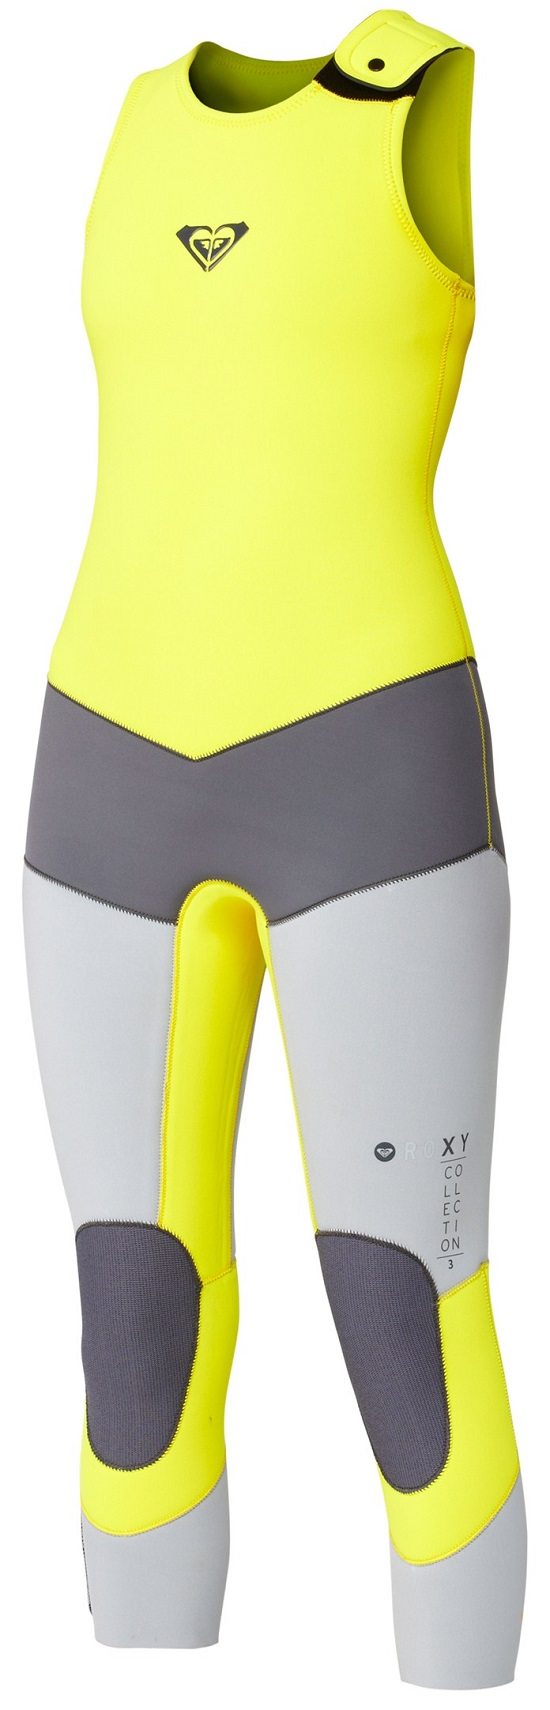 Roxy XY 3mm Long John Women's Wetsuit - LIMITED EDITION - ARJW700001-XKSY